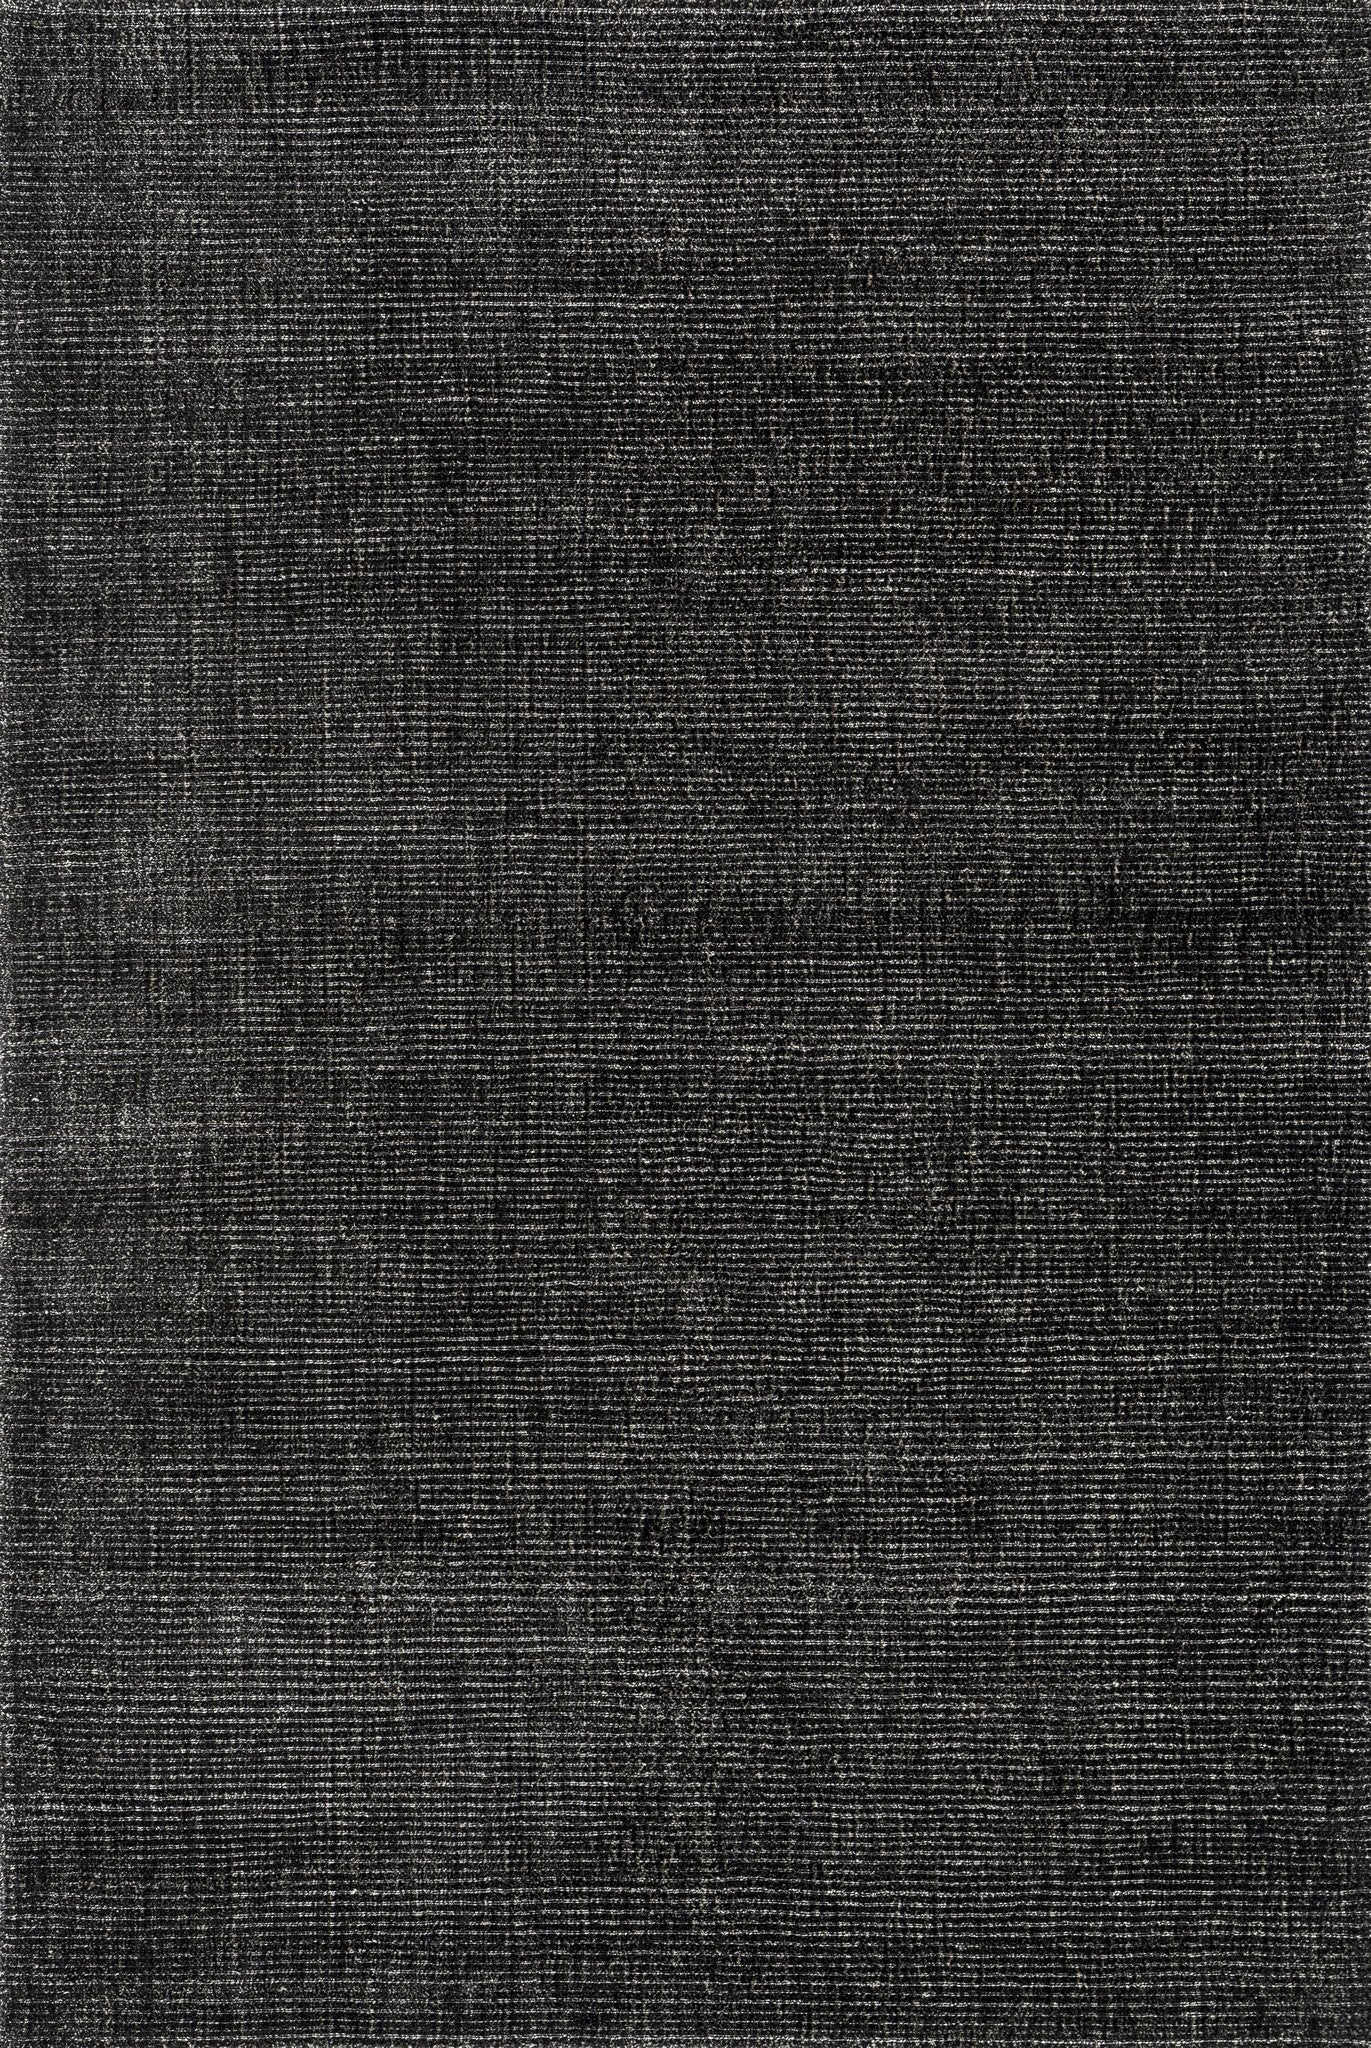 Loloi Luxe LX-01 Charcoal Area Rug main image